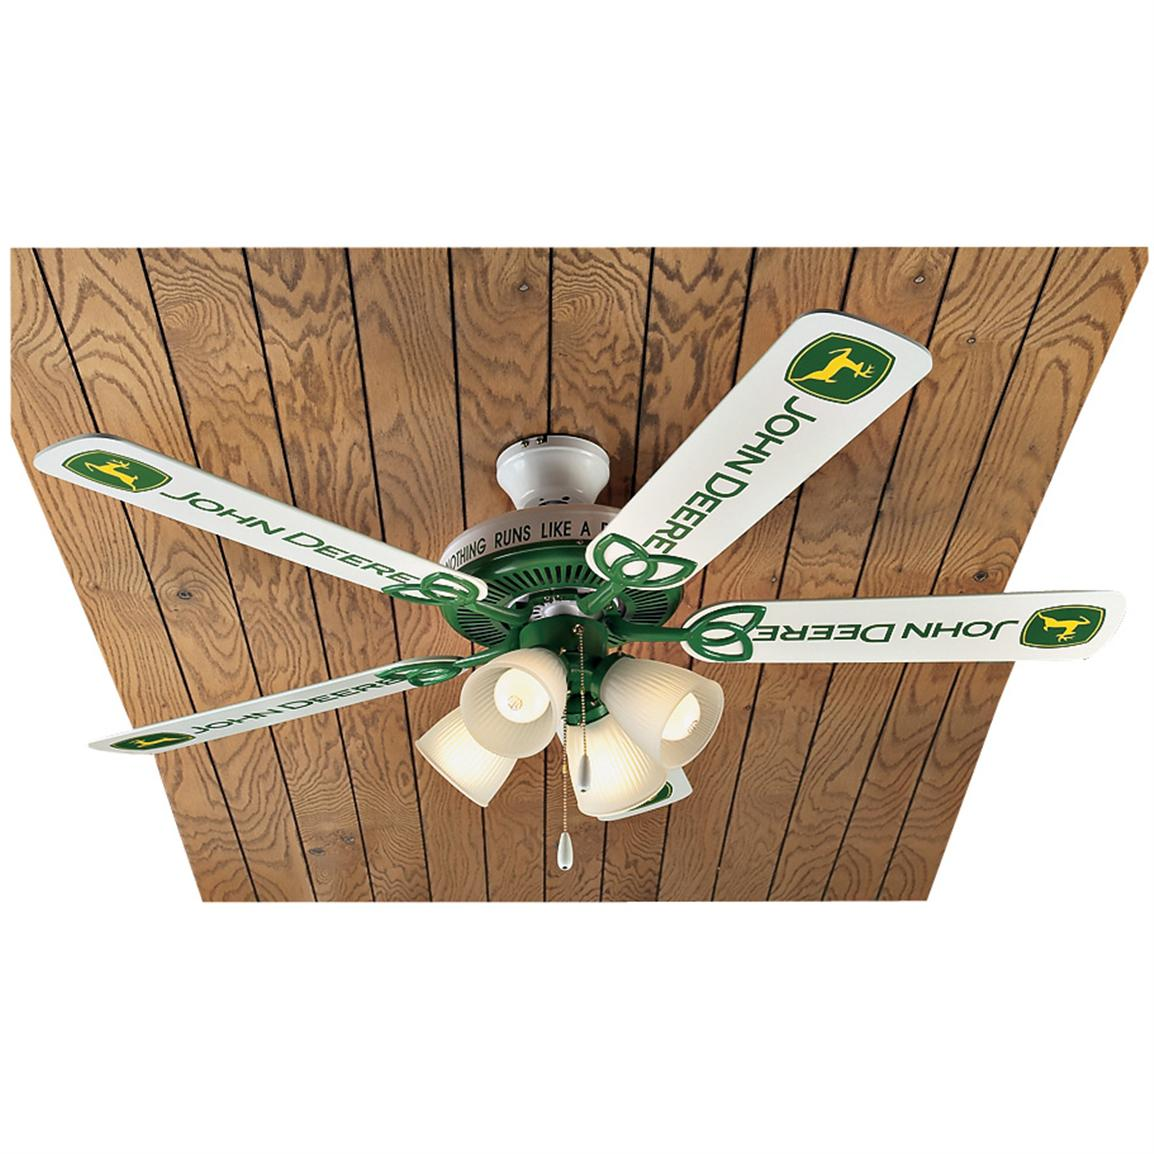 john deere ceiling fan photo - 3